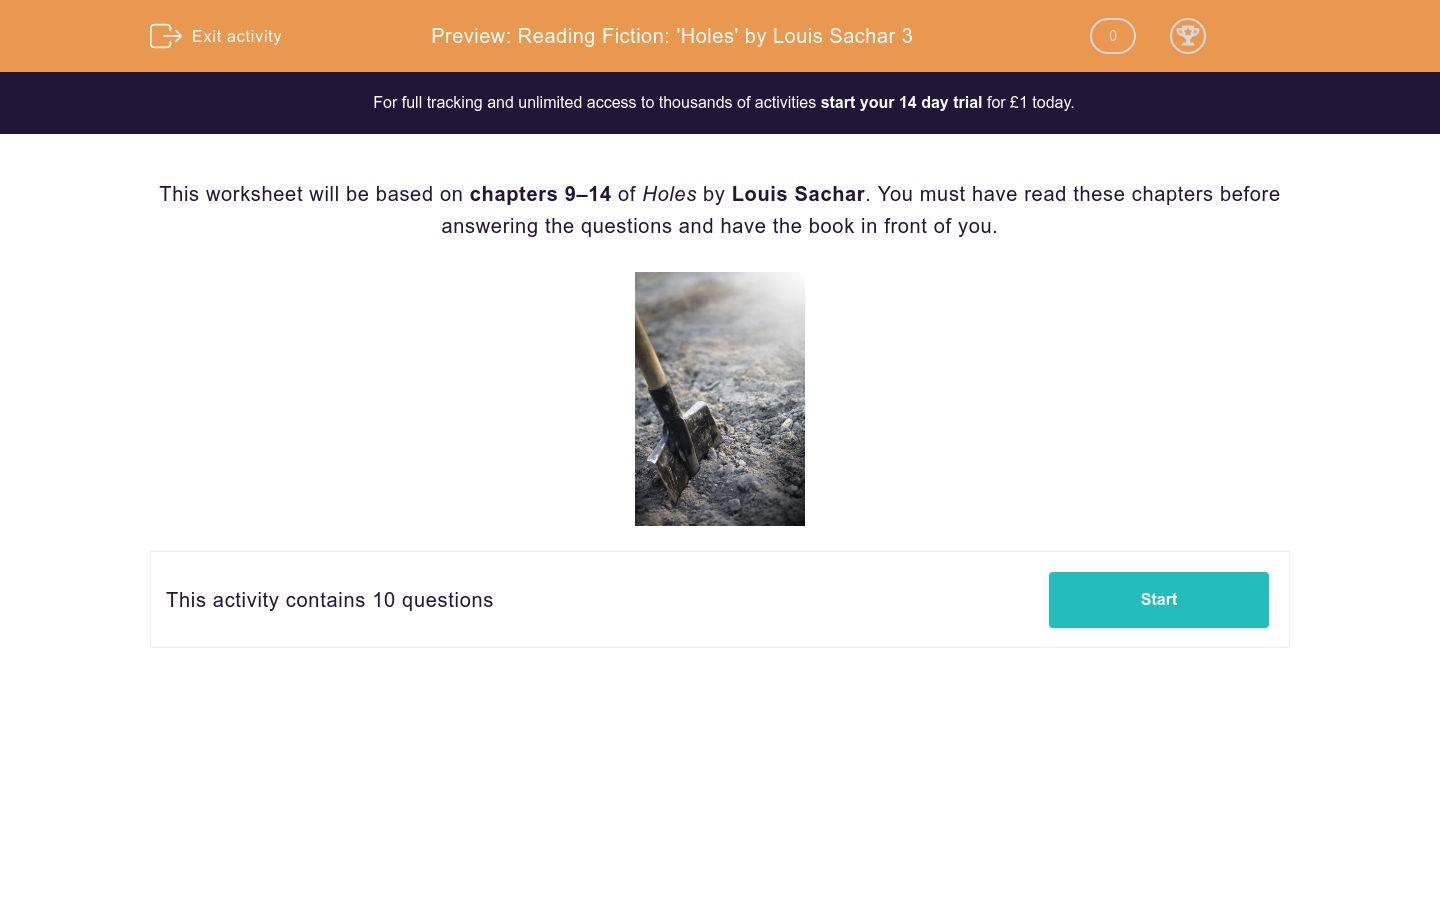 'Reading Fiction: 'Holes' by Louis Sachar 3' worksheet